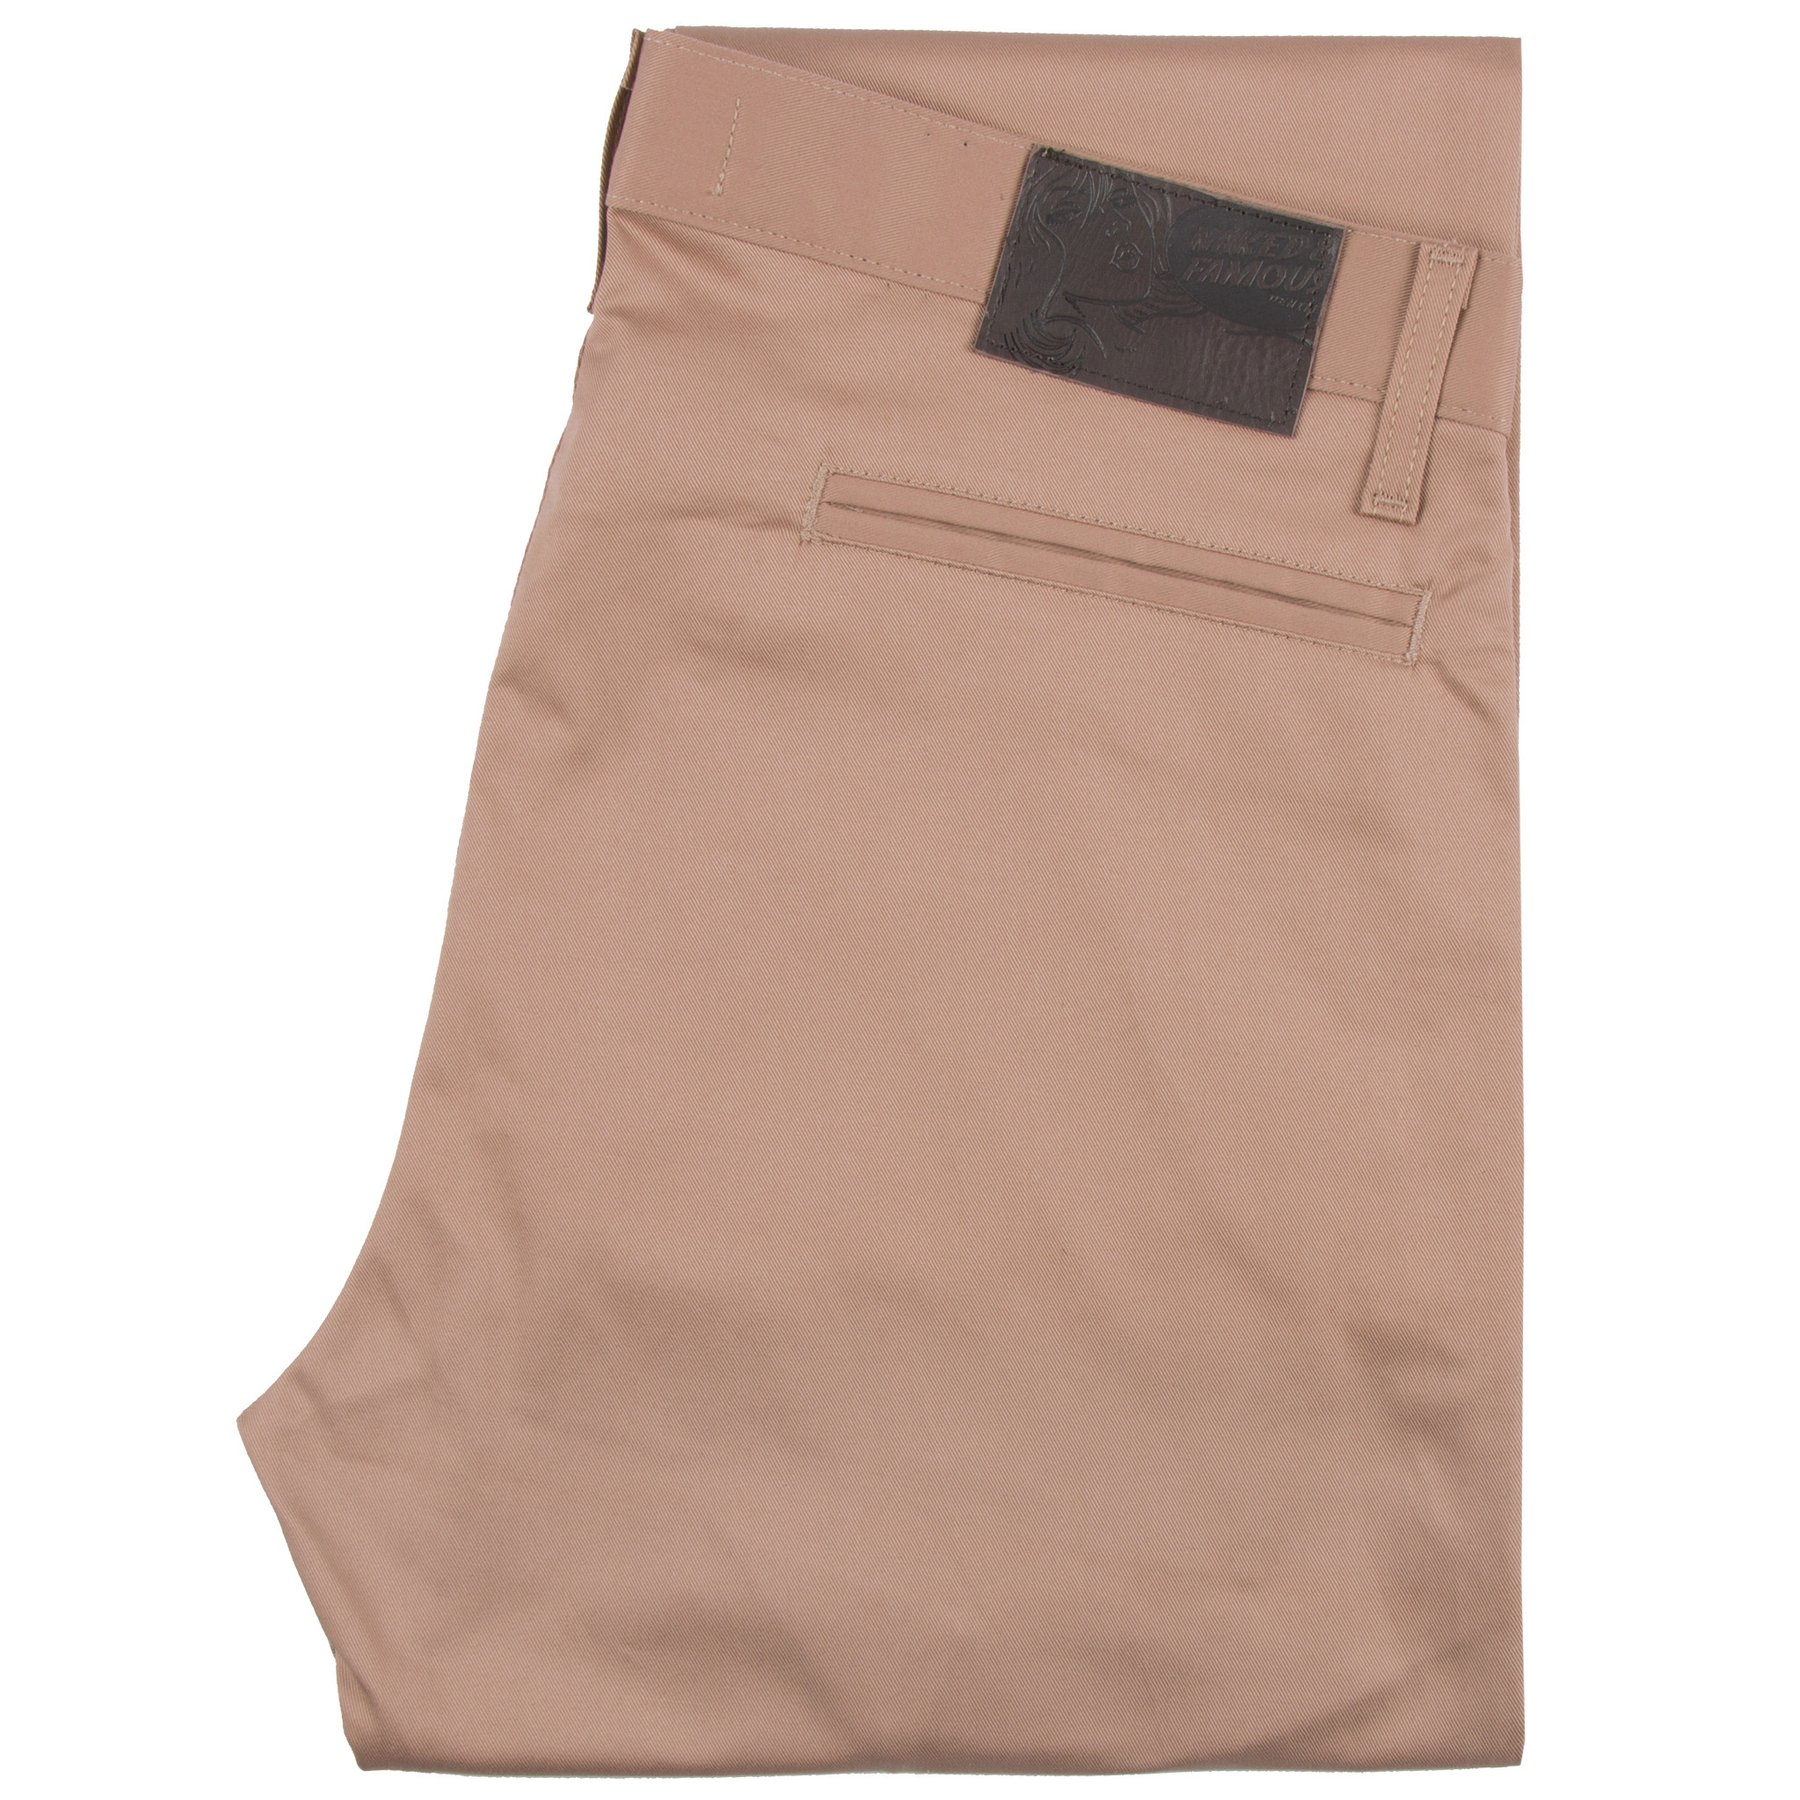 Beige stretch twill - Slim Chino